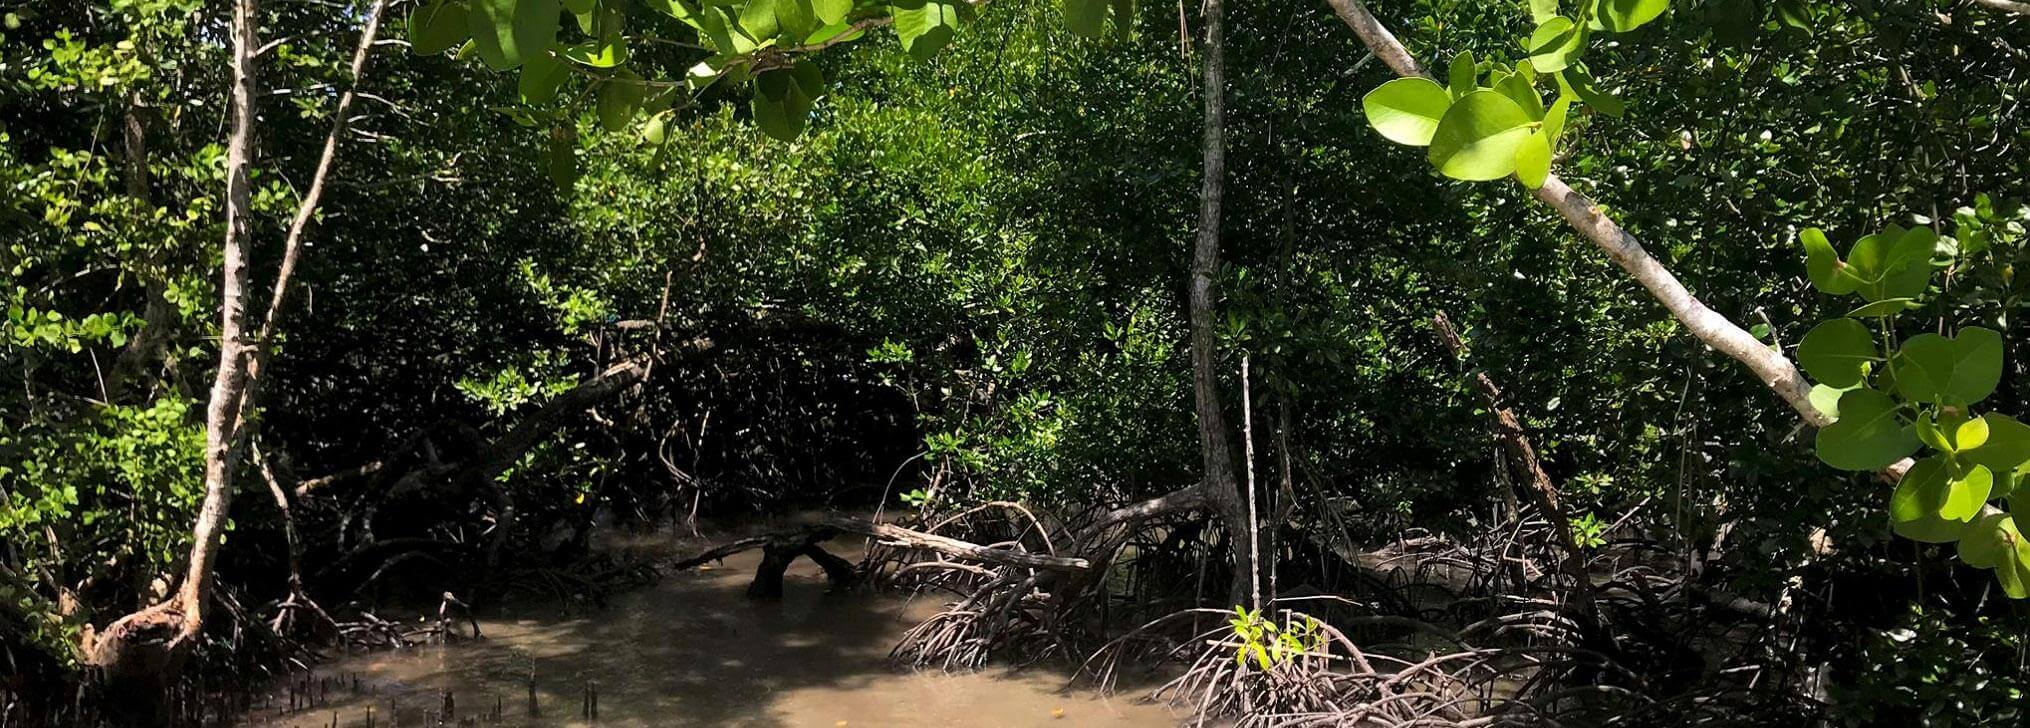 The Well-Rooted Mangroves of Indonesia